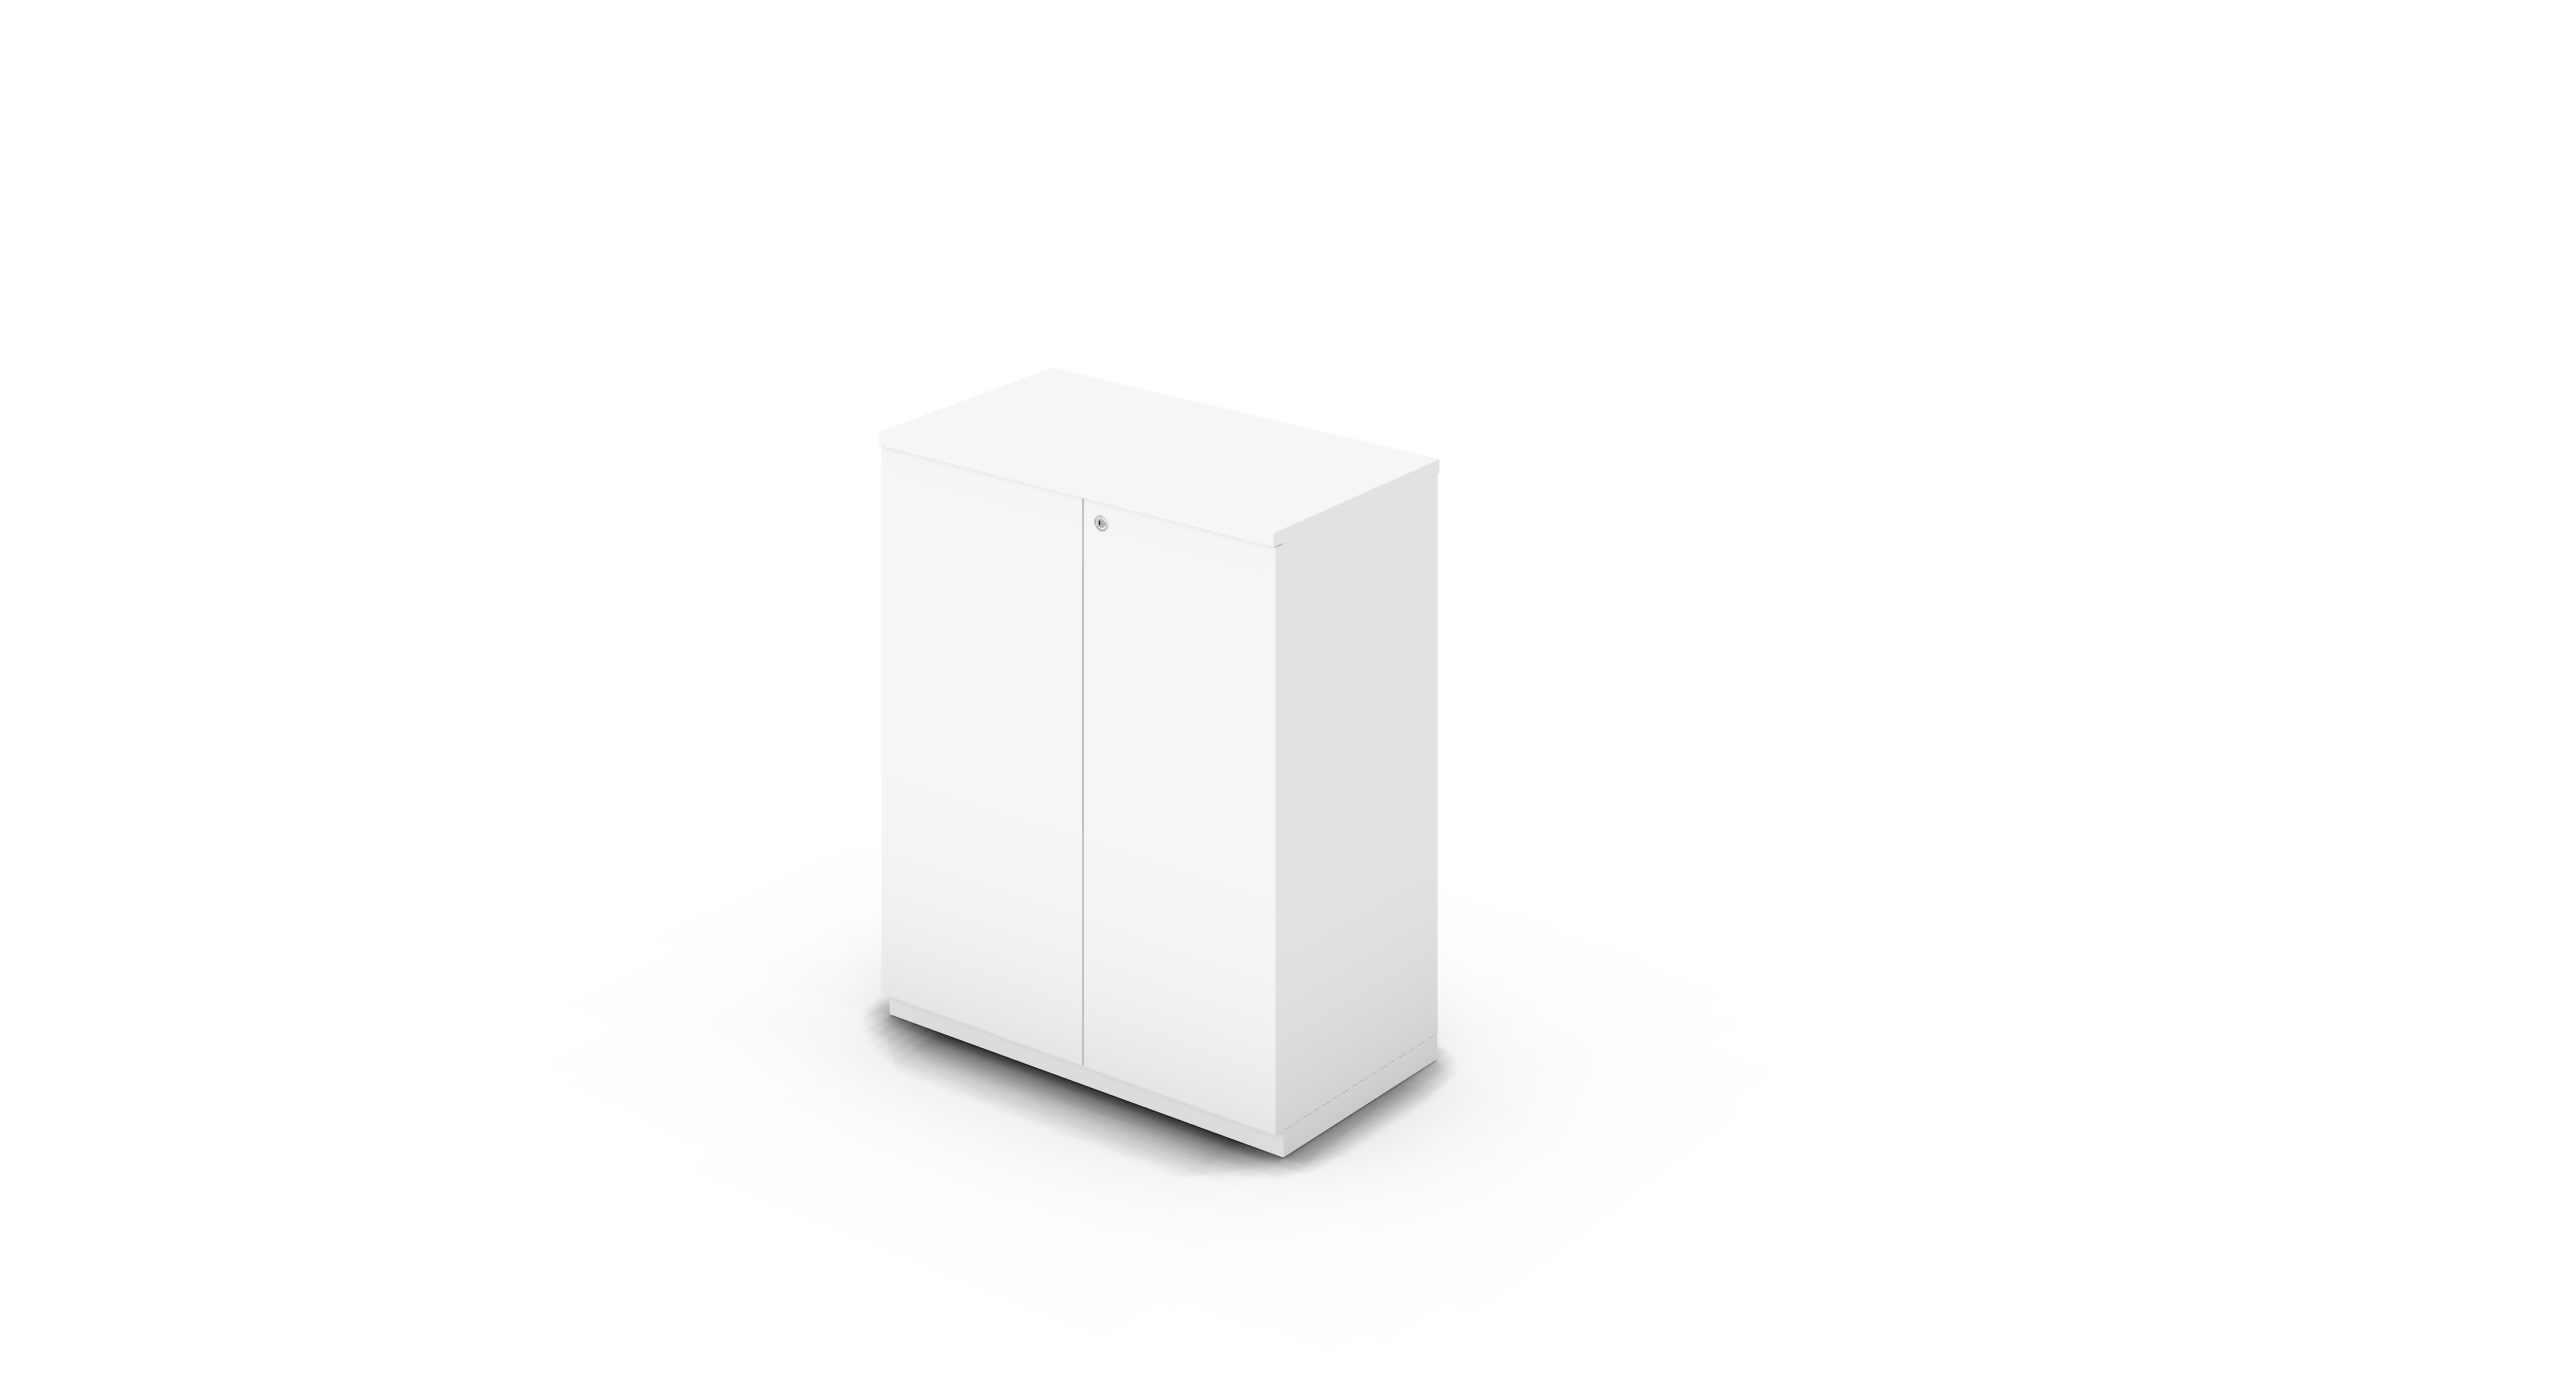 Cabinet_800x450x1125_HD_White_Push_WithCylinder